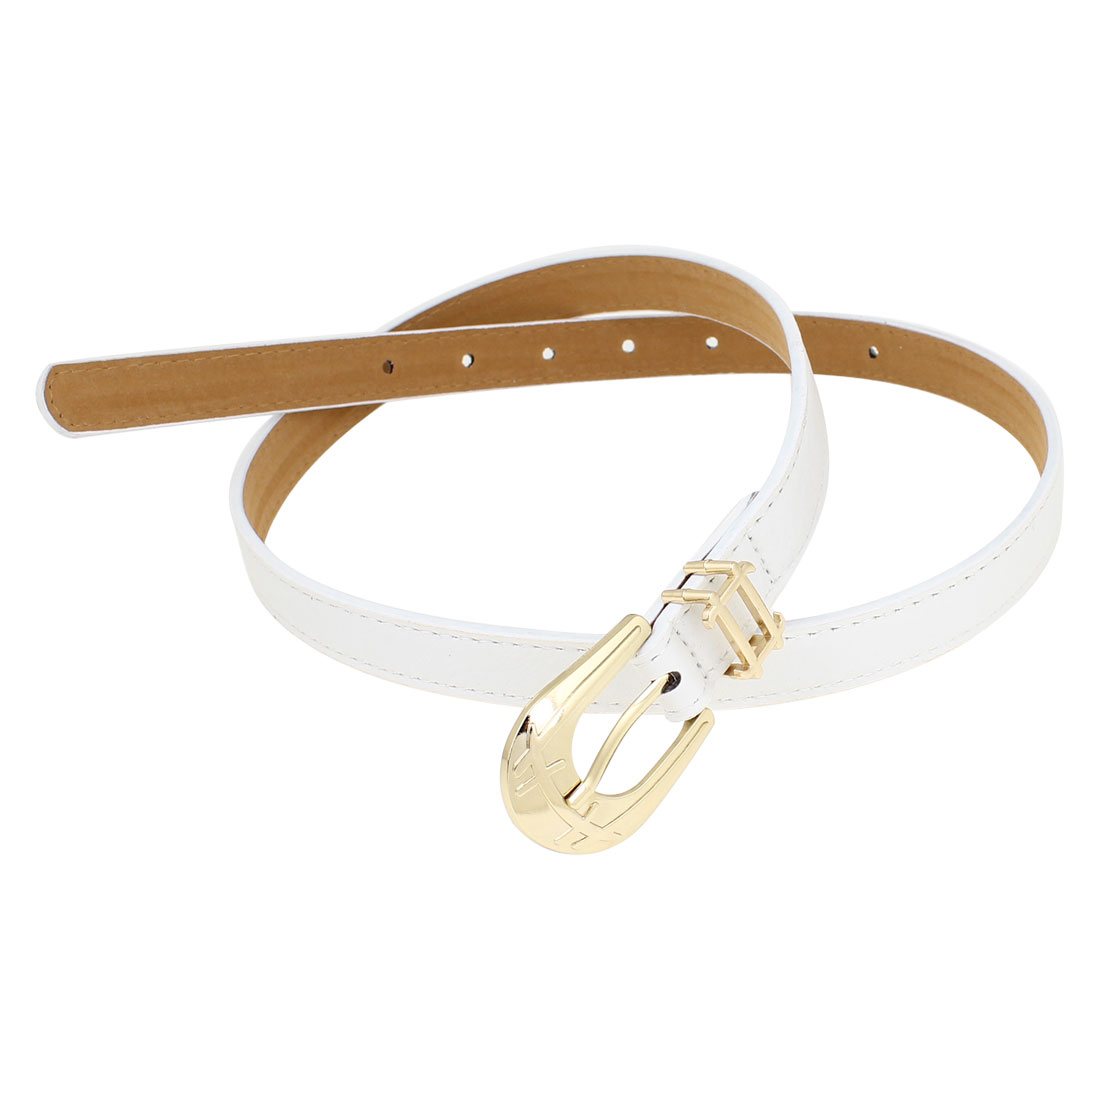 One Pin Buckle White Faux Leather Adjustable Slender Waist Belt for Women